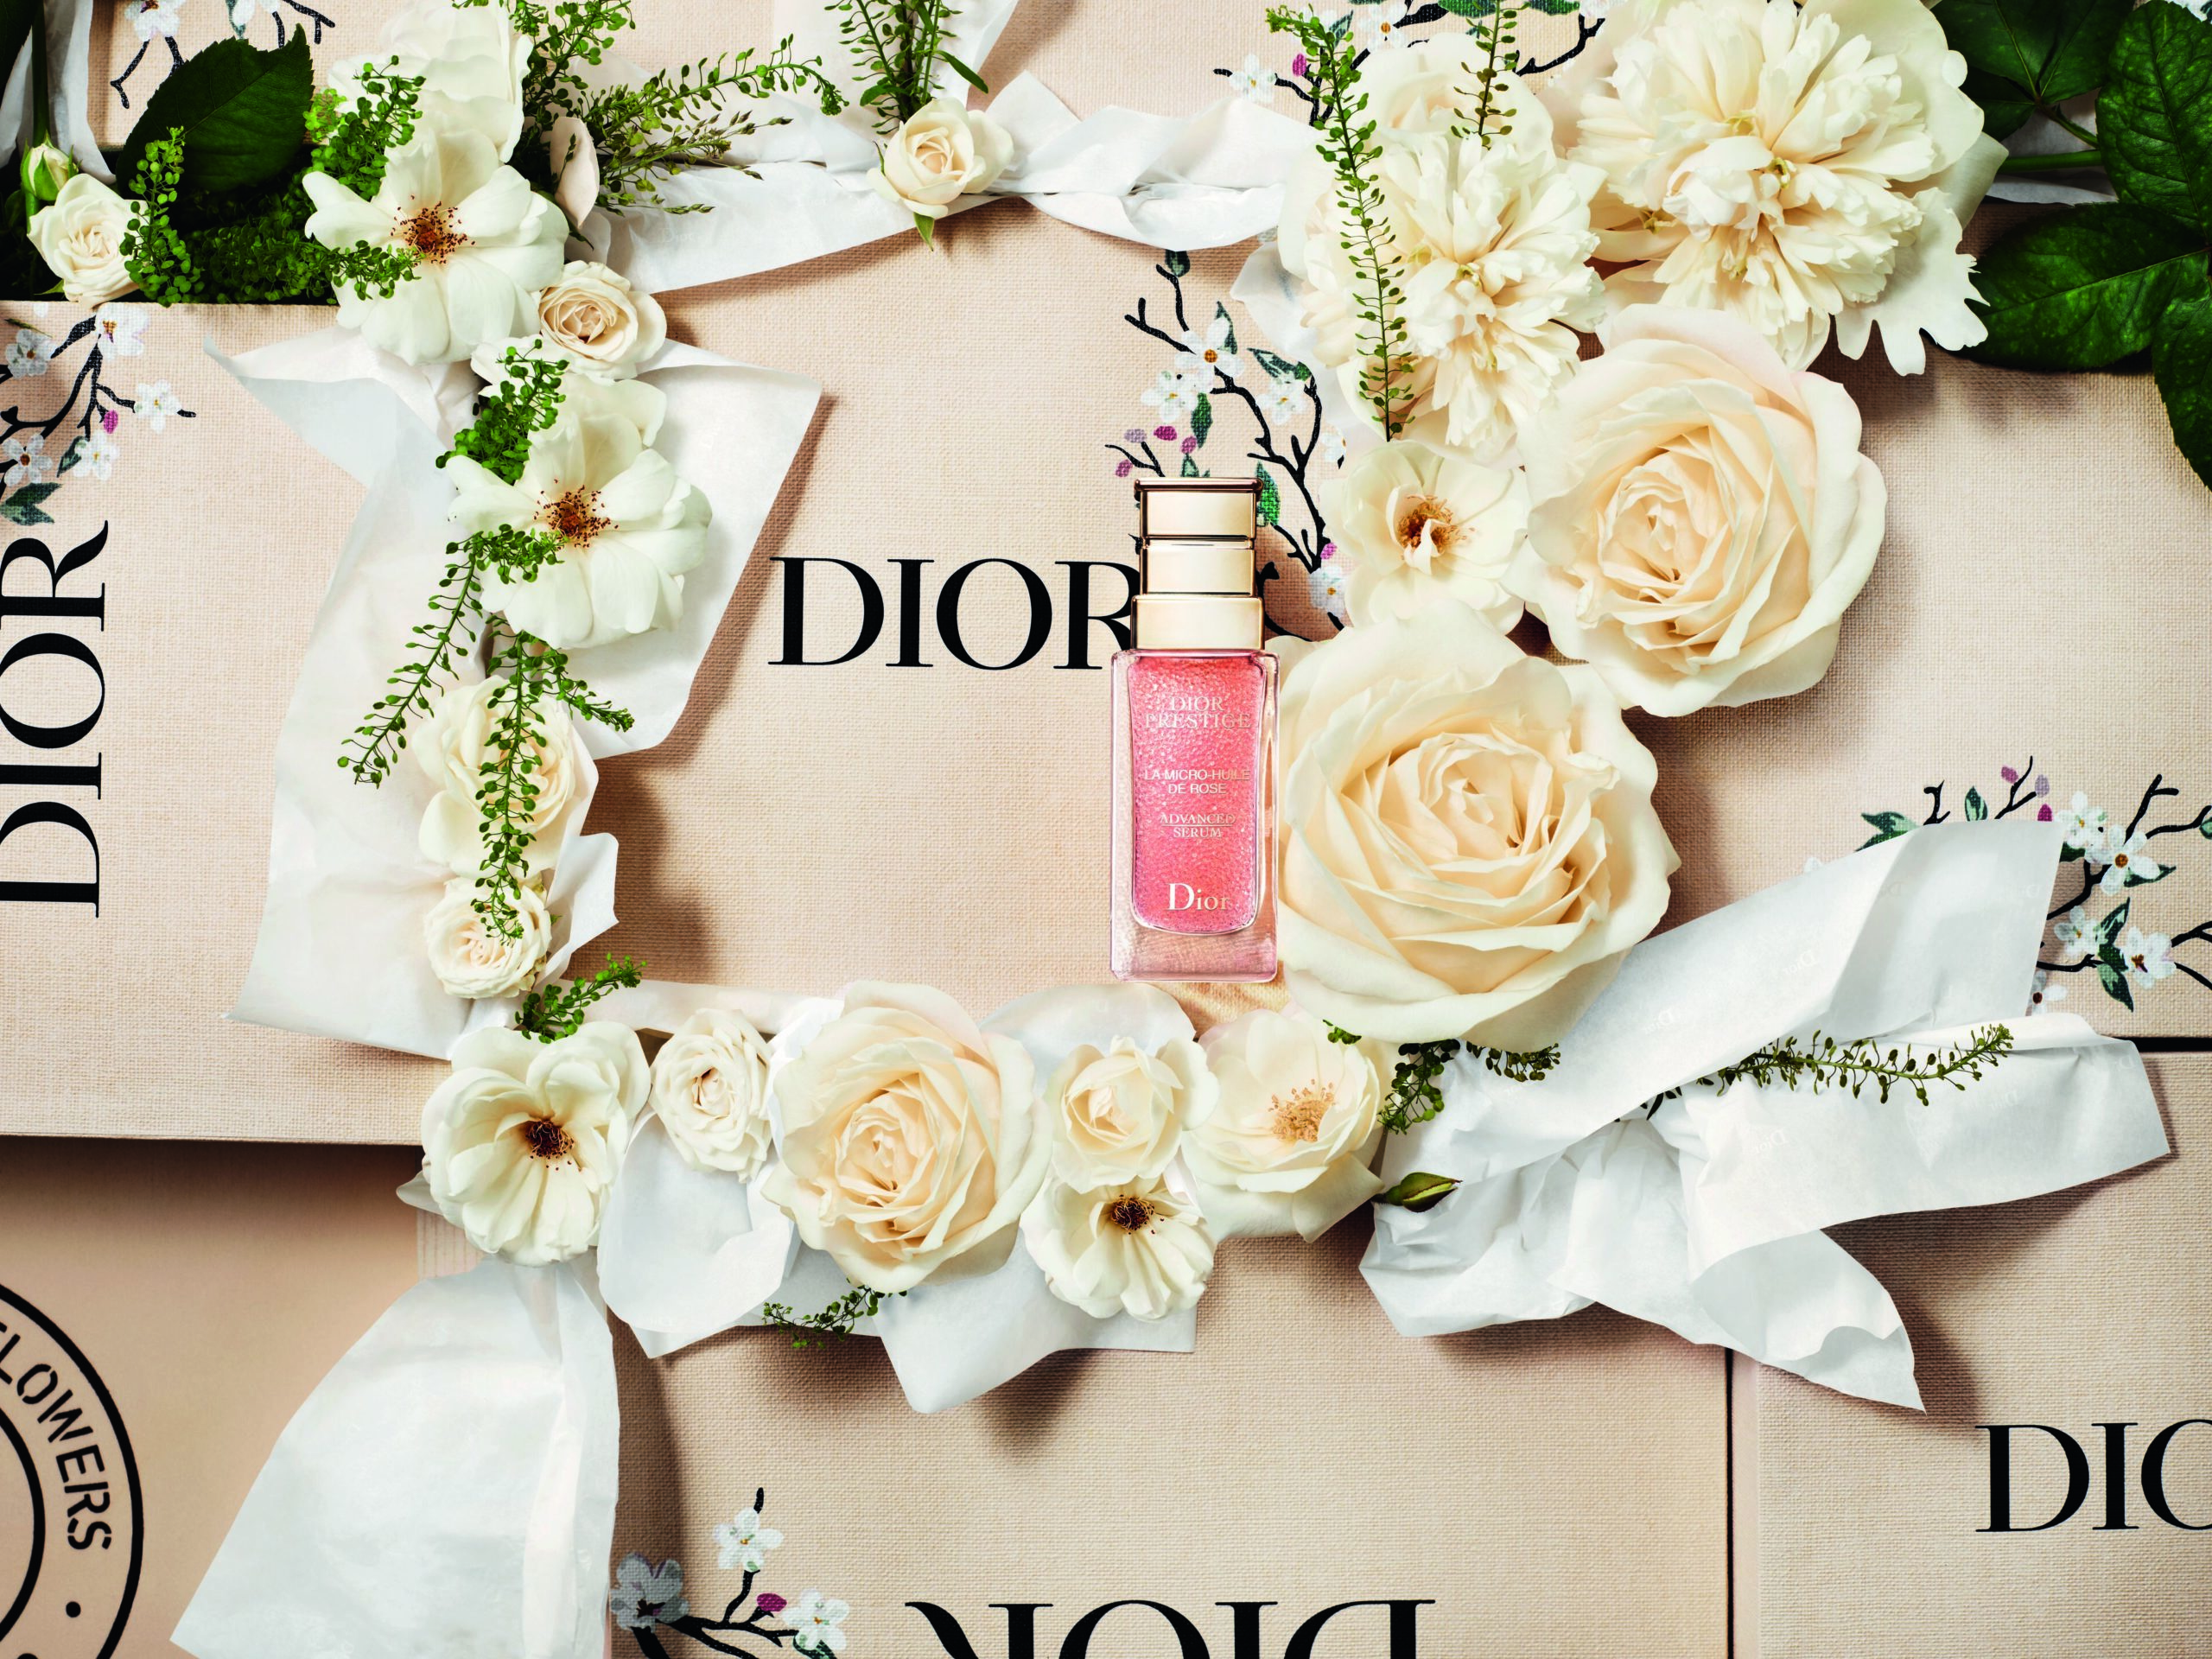 mother's day gift dior